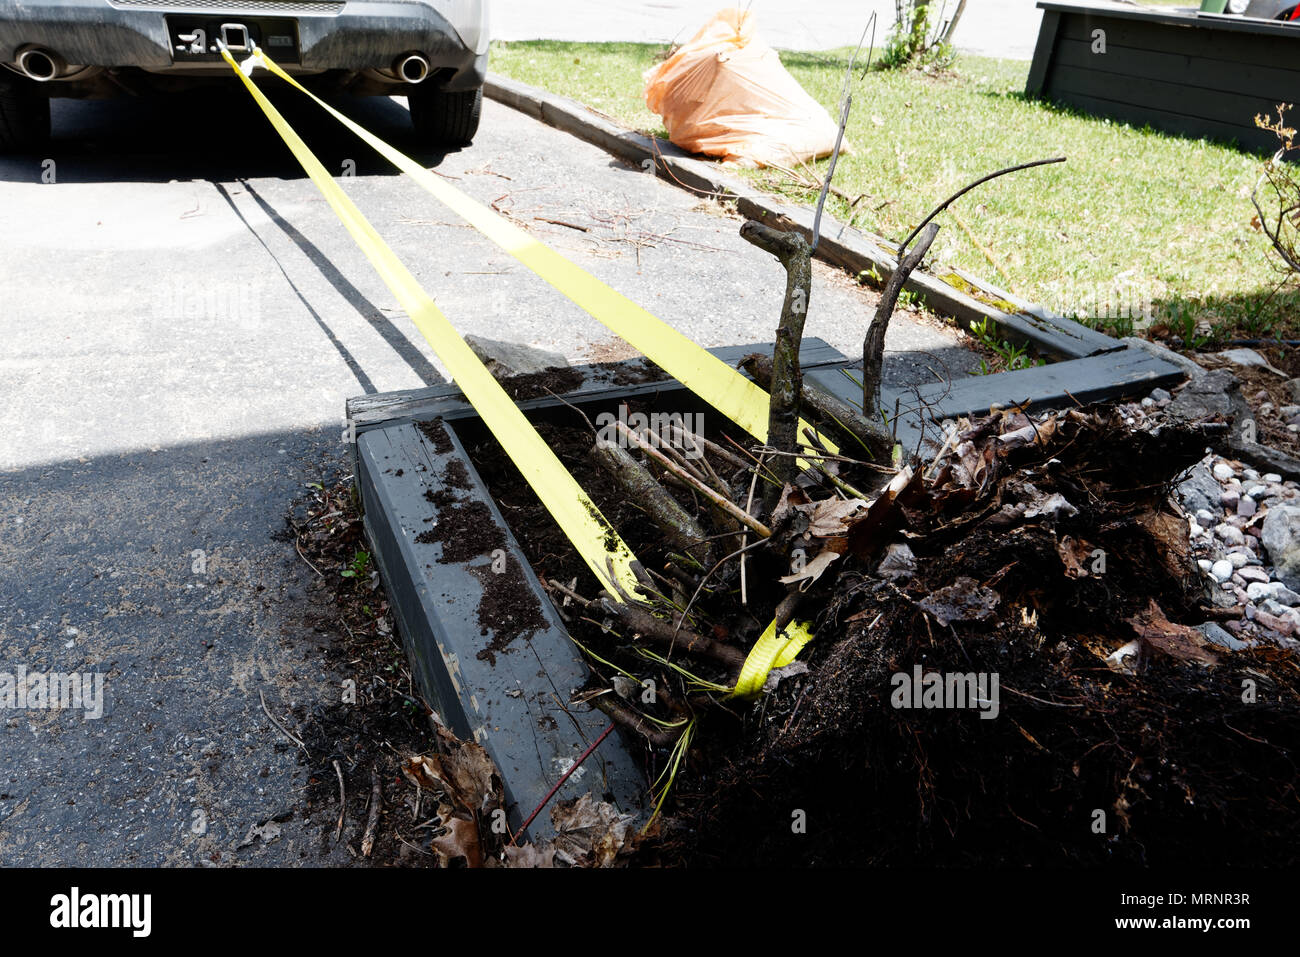 uprooting-a-stubborn-bush-by-pulling-it-with-a-car-MRNR3R.jpg